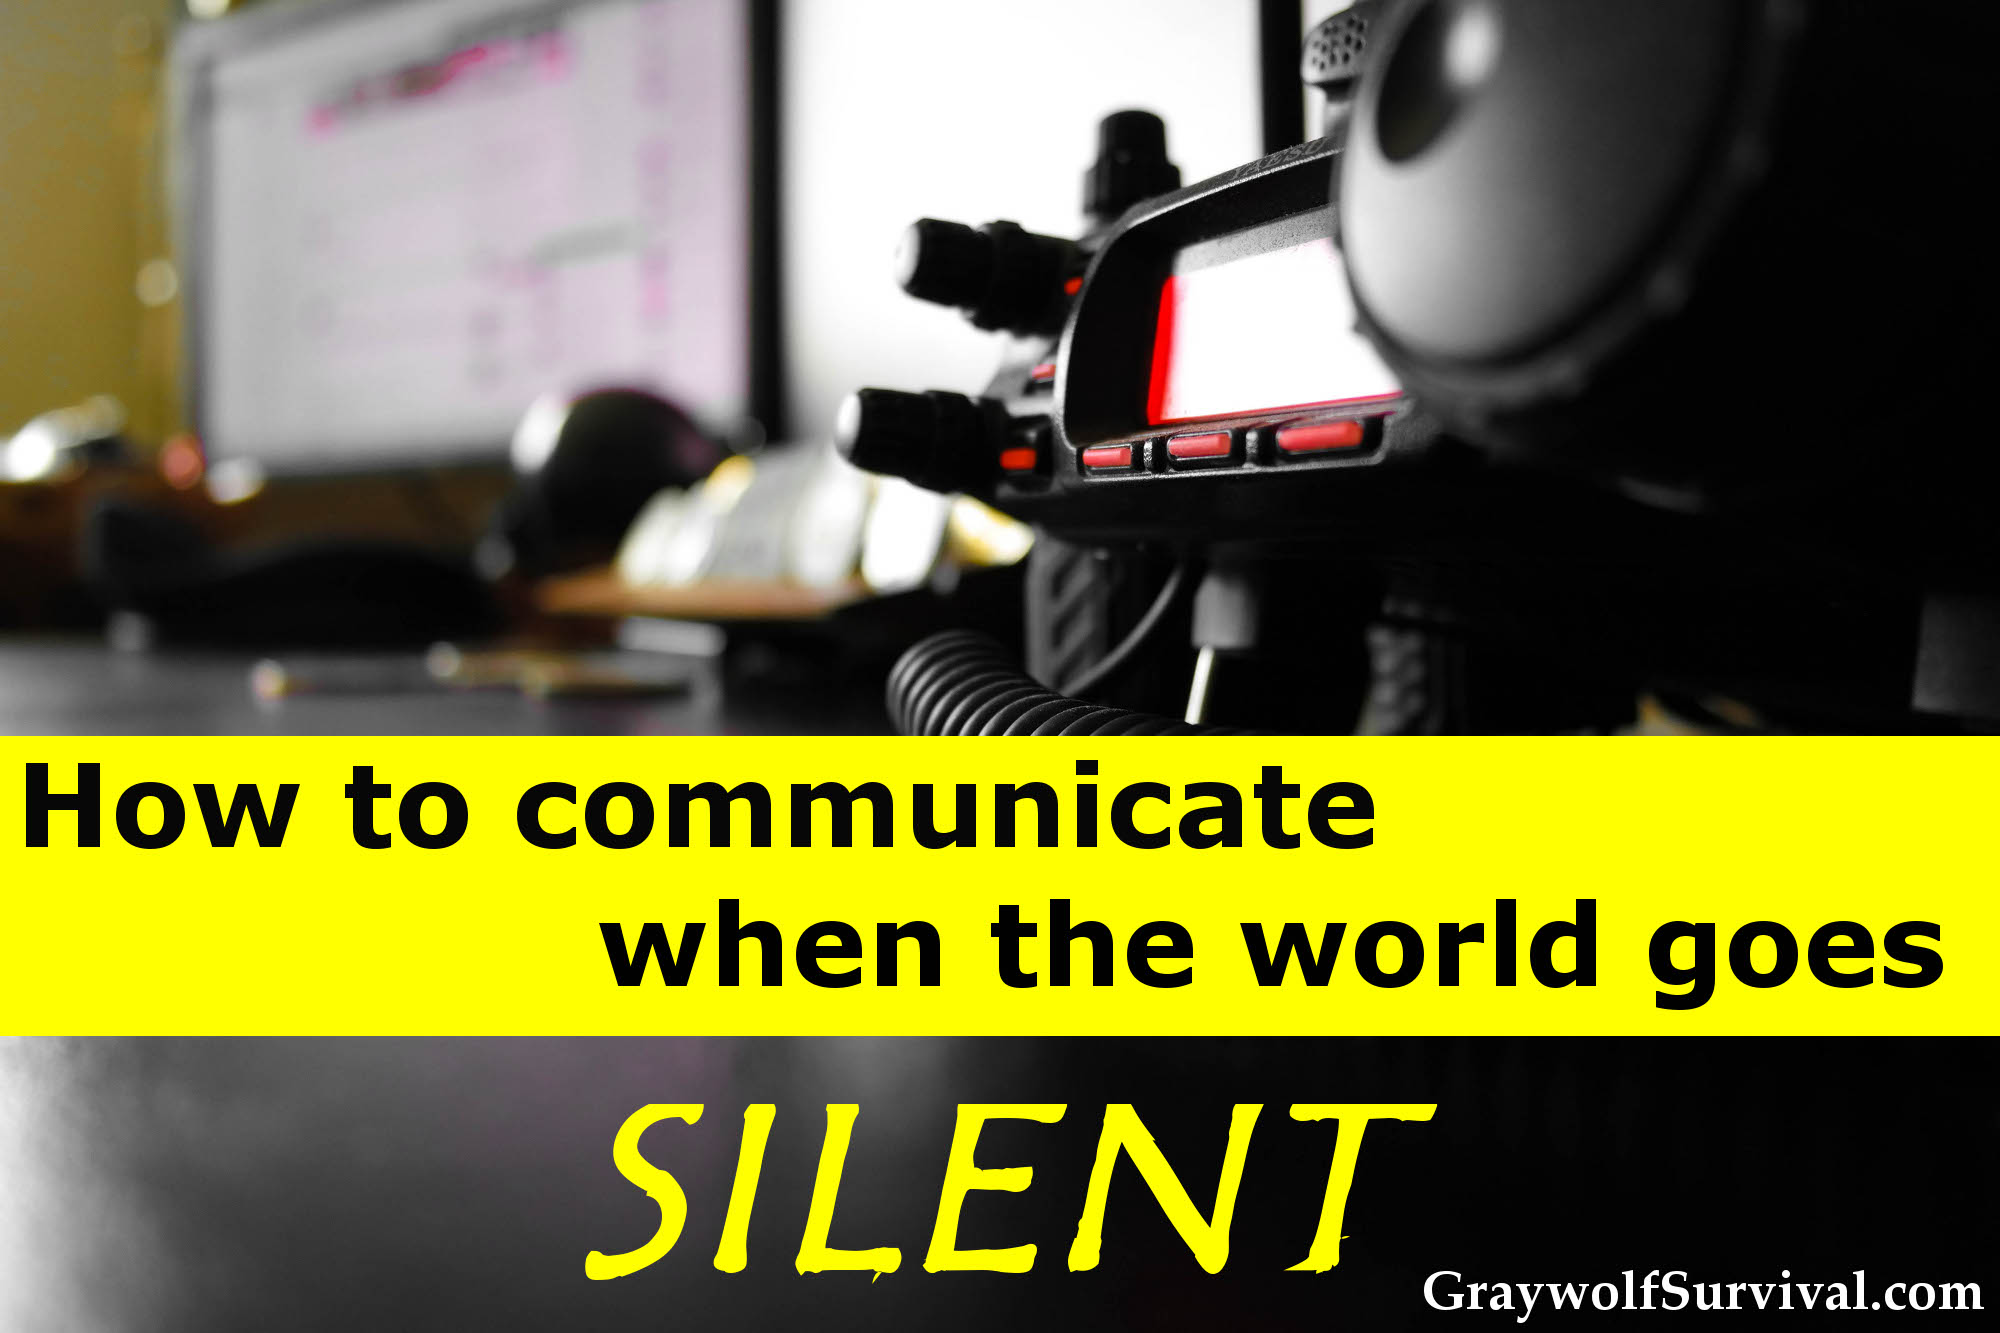 hight resolution of how to communicate when the world goes silent jpg